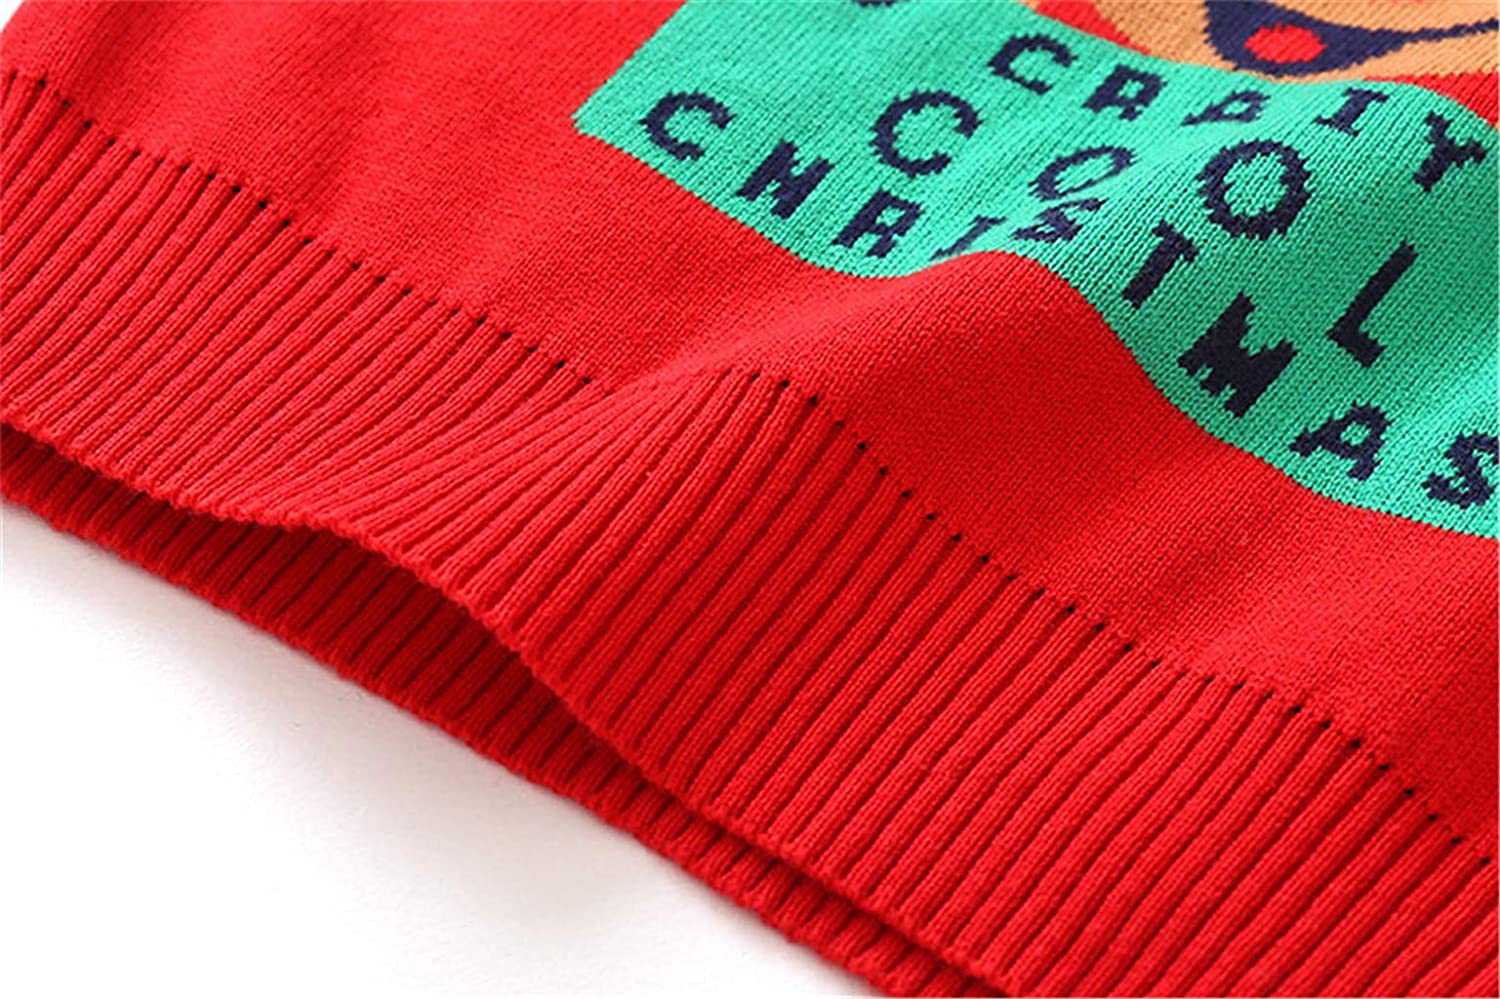 Kids Christmas Sweater Winter Fleece Knitwear Sweatshirt Pullover Warm Outwear 2-3 Years